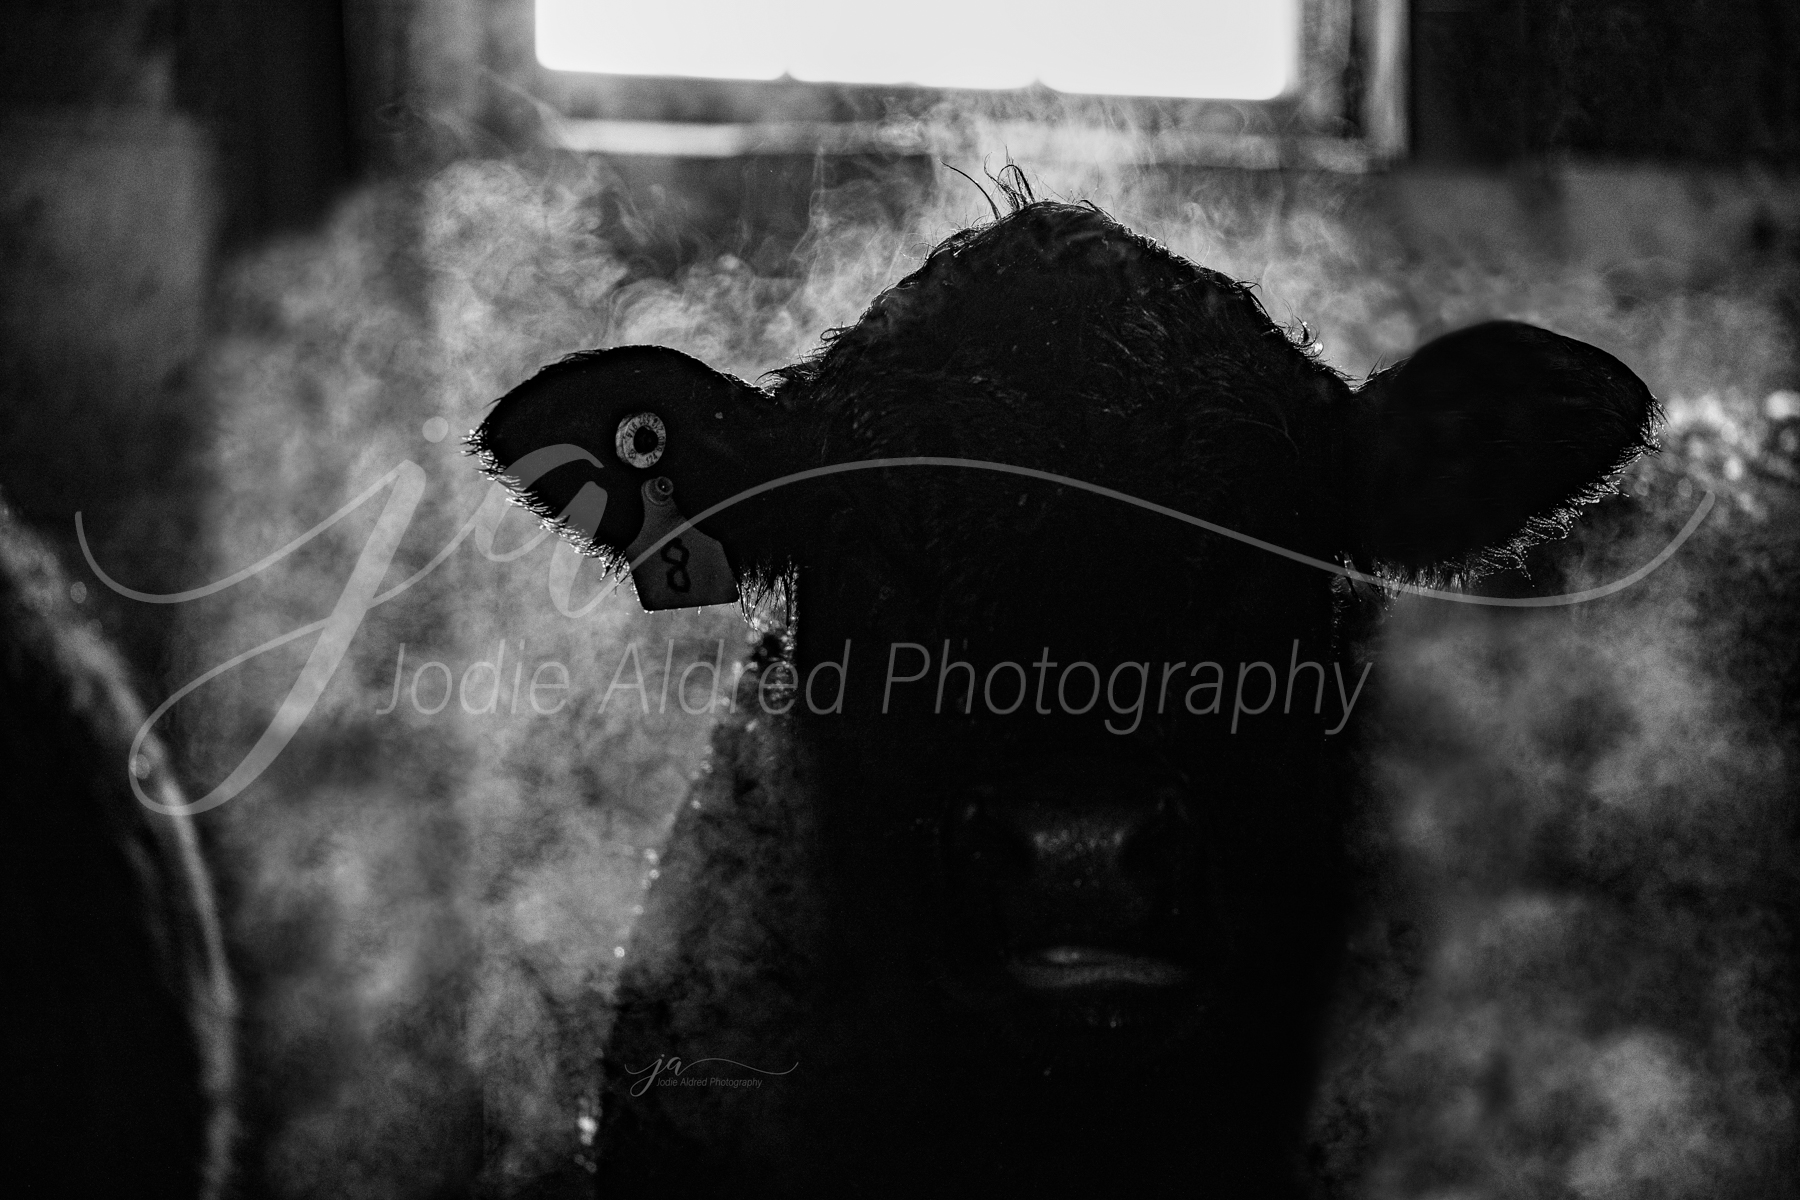 Jodie-Aldred-Photography-Ontario-Agriculture-Photographer-cattle-fog-barn-steer-cow-steam-winter.jpg